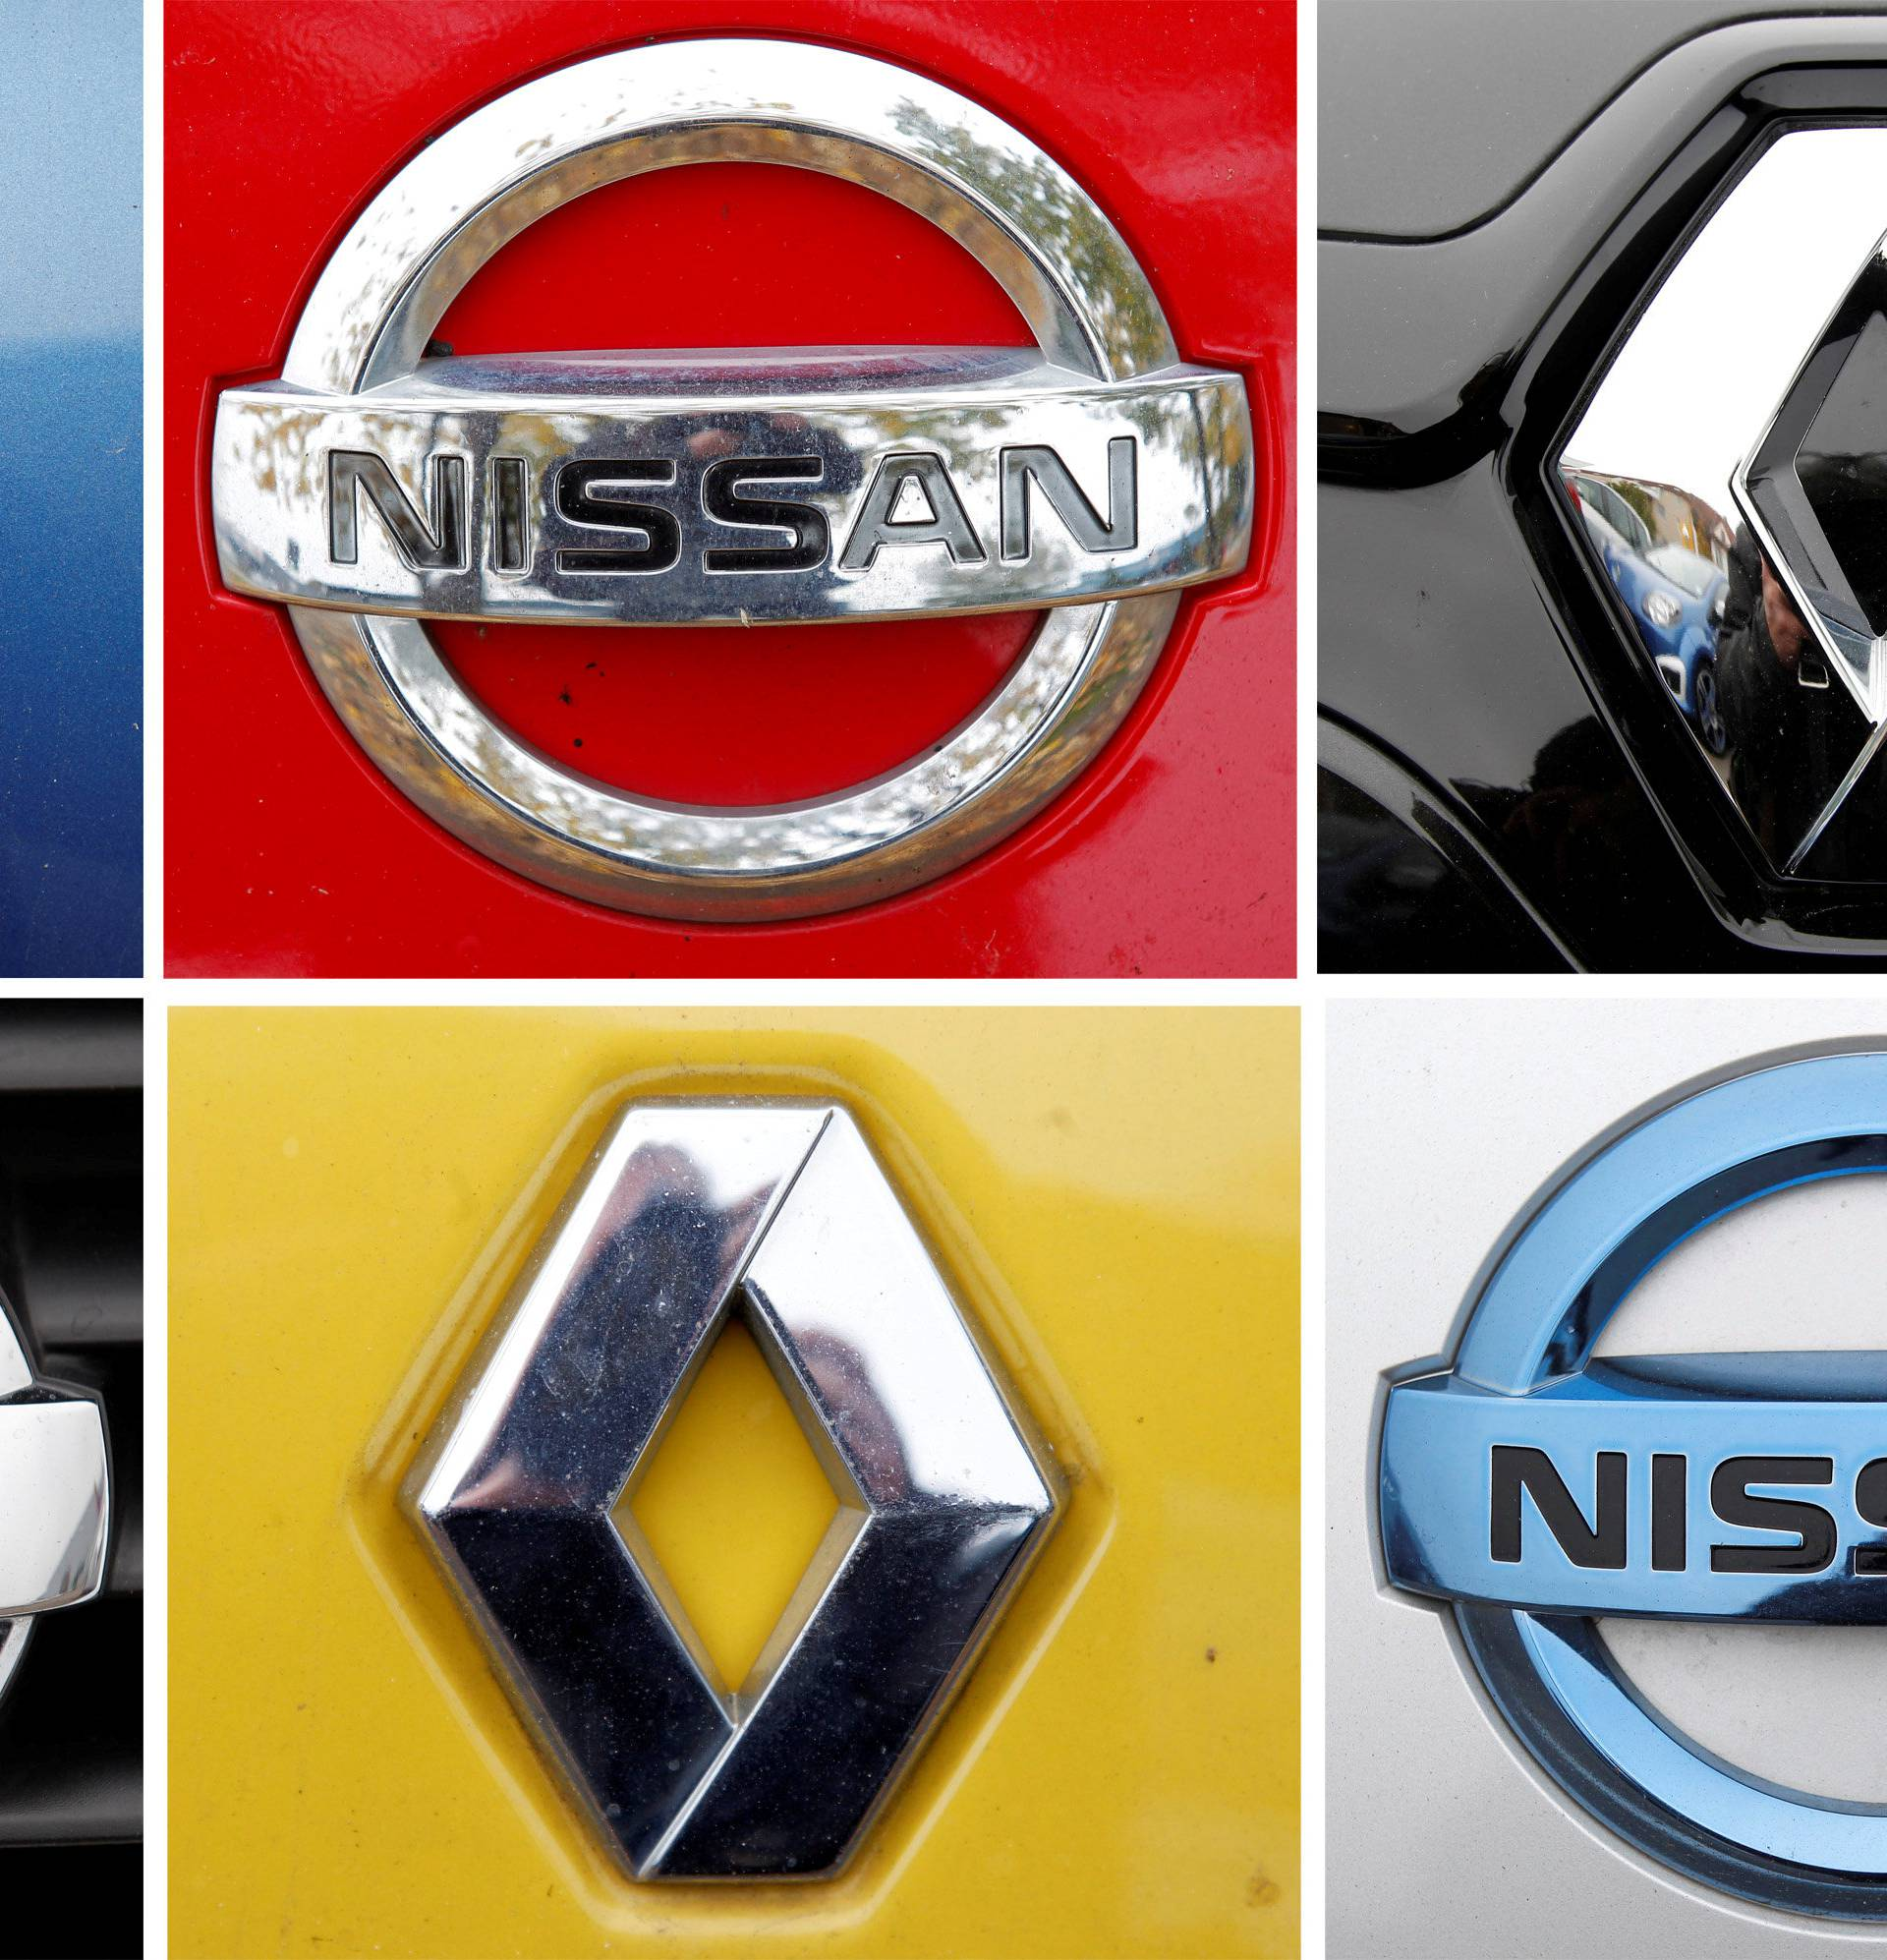 FILE PHOTO: A combination picture shows logos of Japan's Nissan and France's Renault on cars in Strasbourg